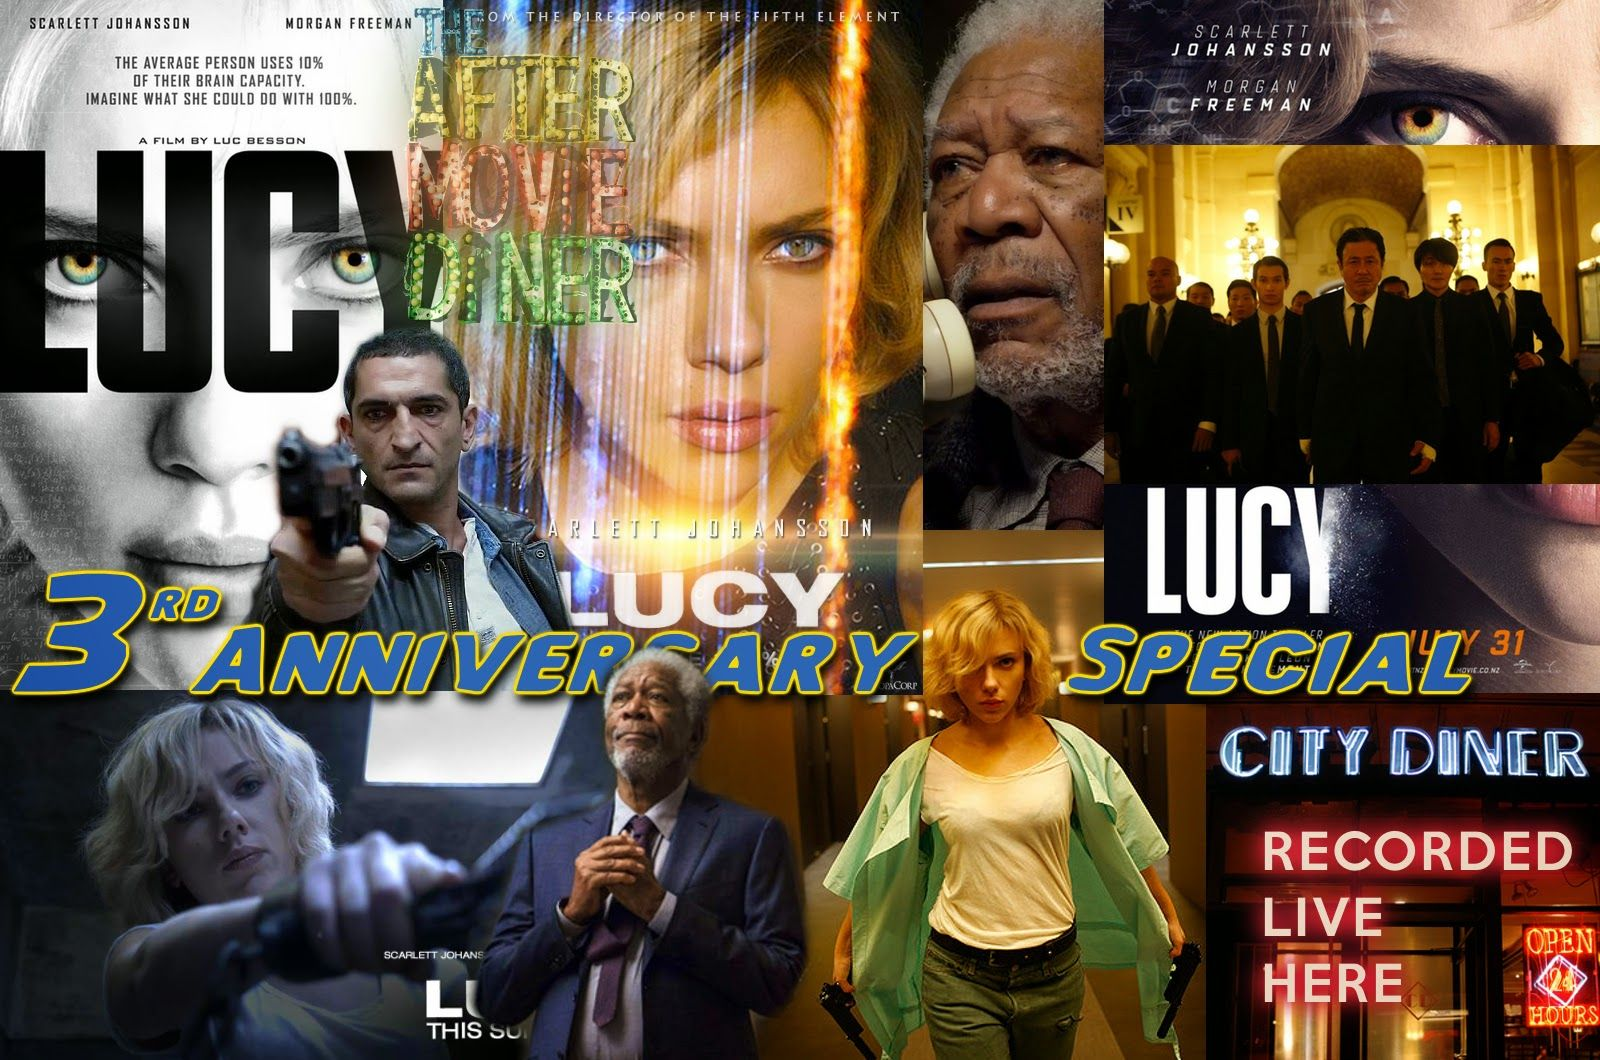 Podcast from the After Movie Diner: Episode 131 - 3rd Anniversary Show/Lucy